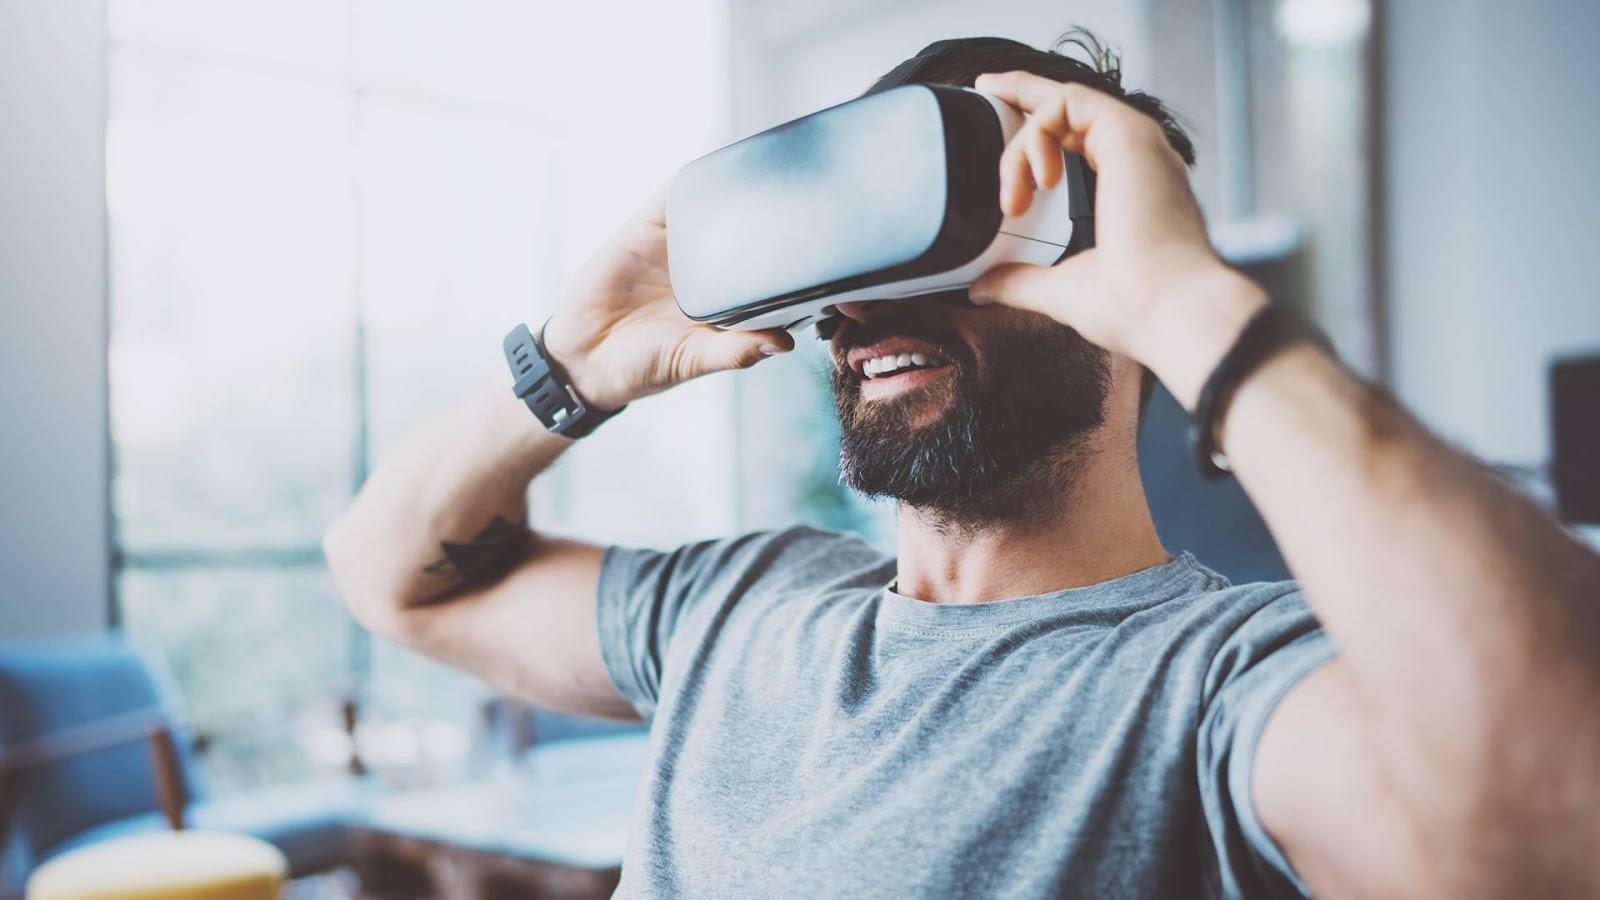 838ed5bffe9f The major task of the virtual reality (VR) developers is to ensure full  immersion in the VR world. This means that the conscious part of the brain  ...